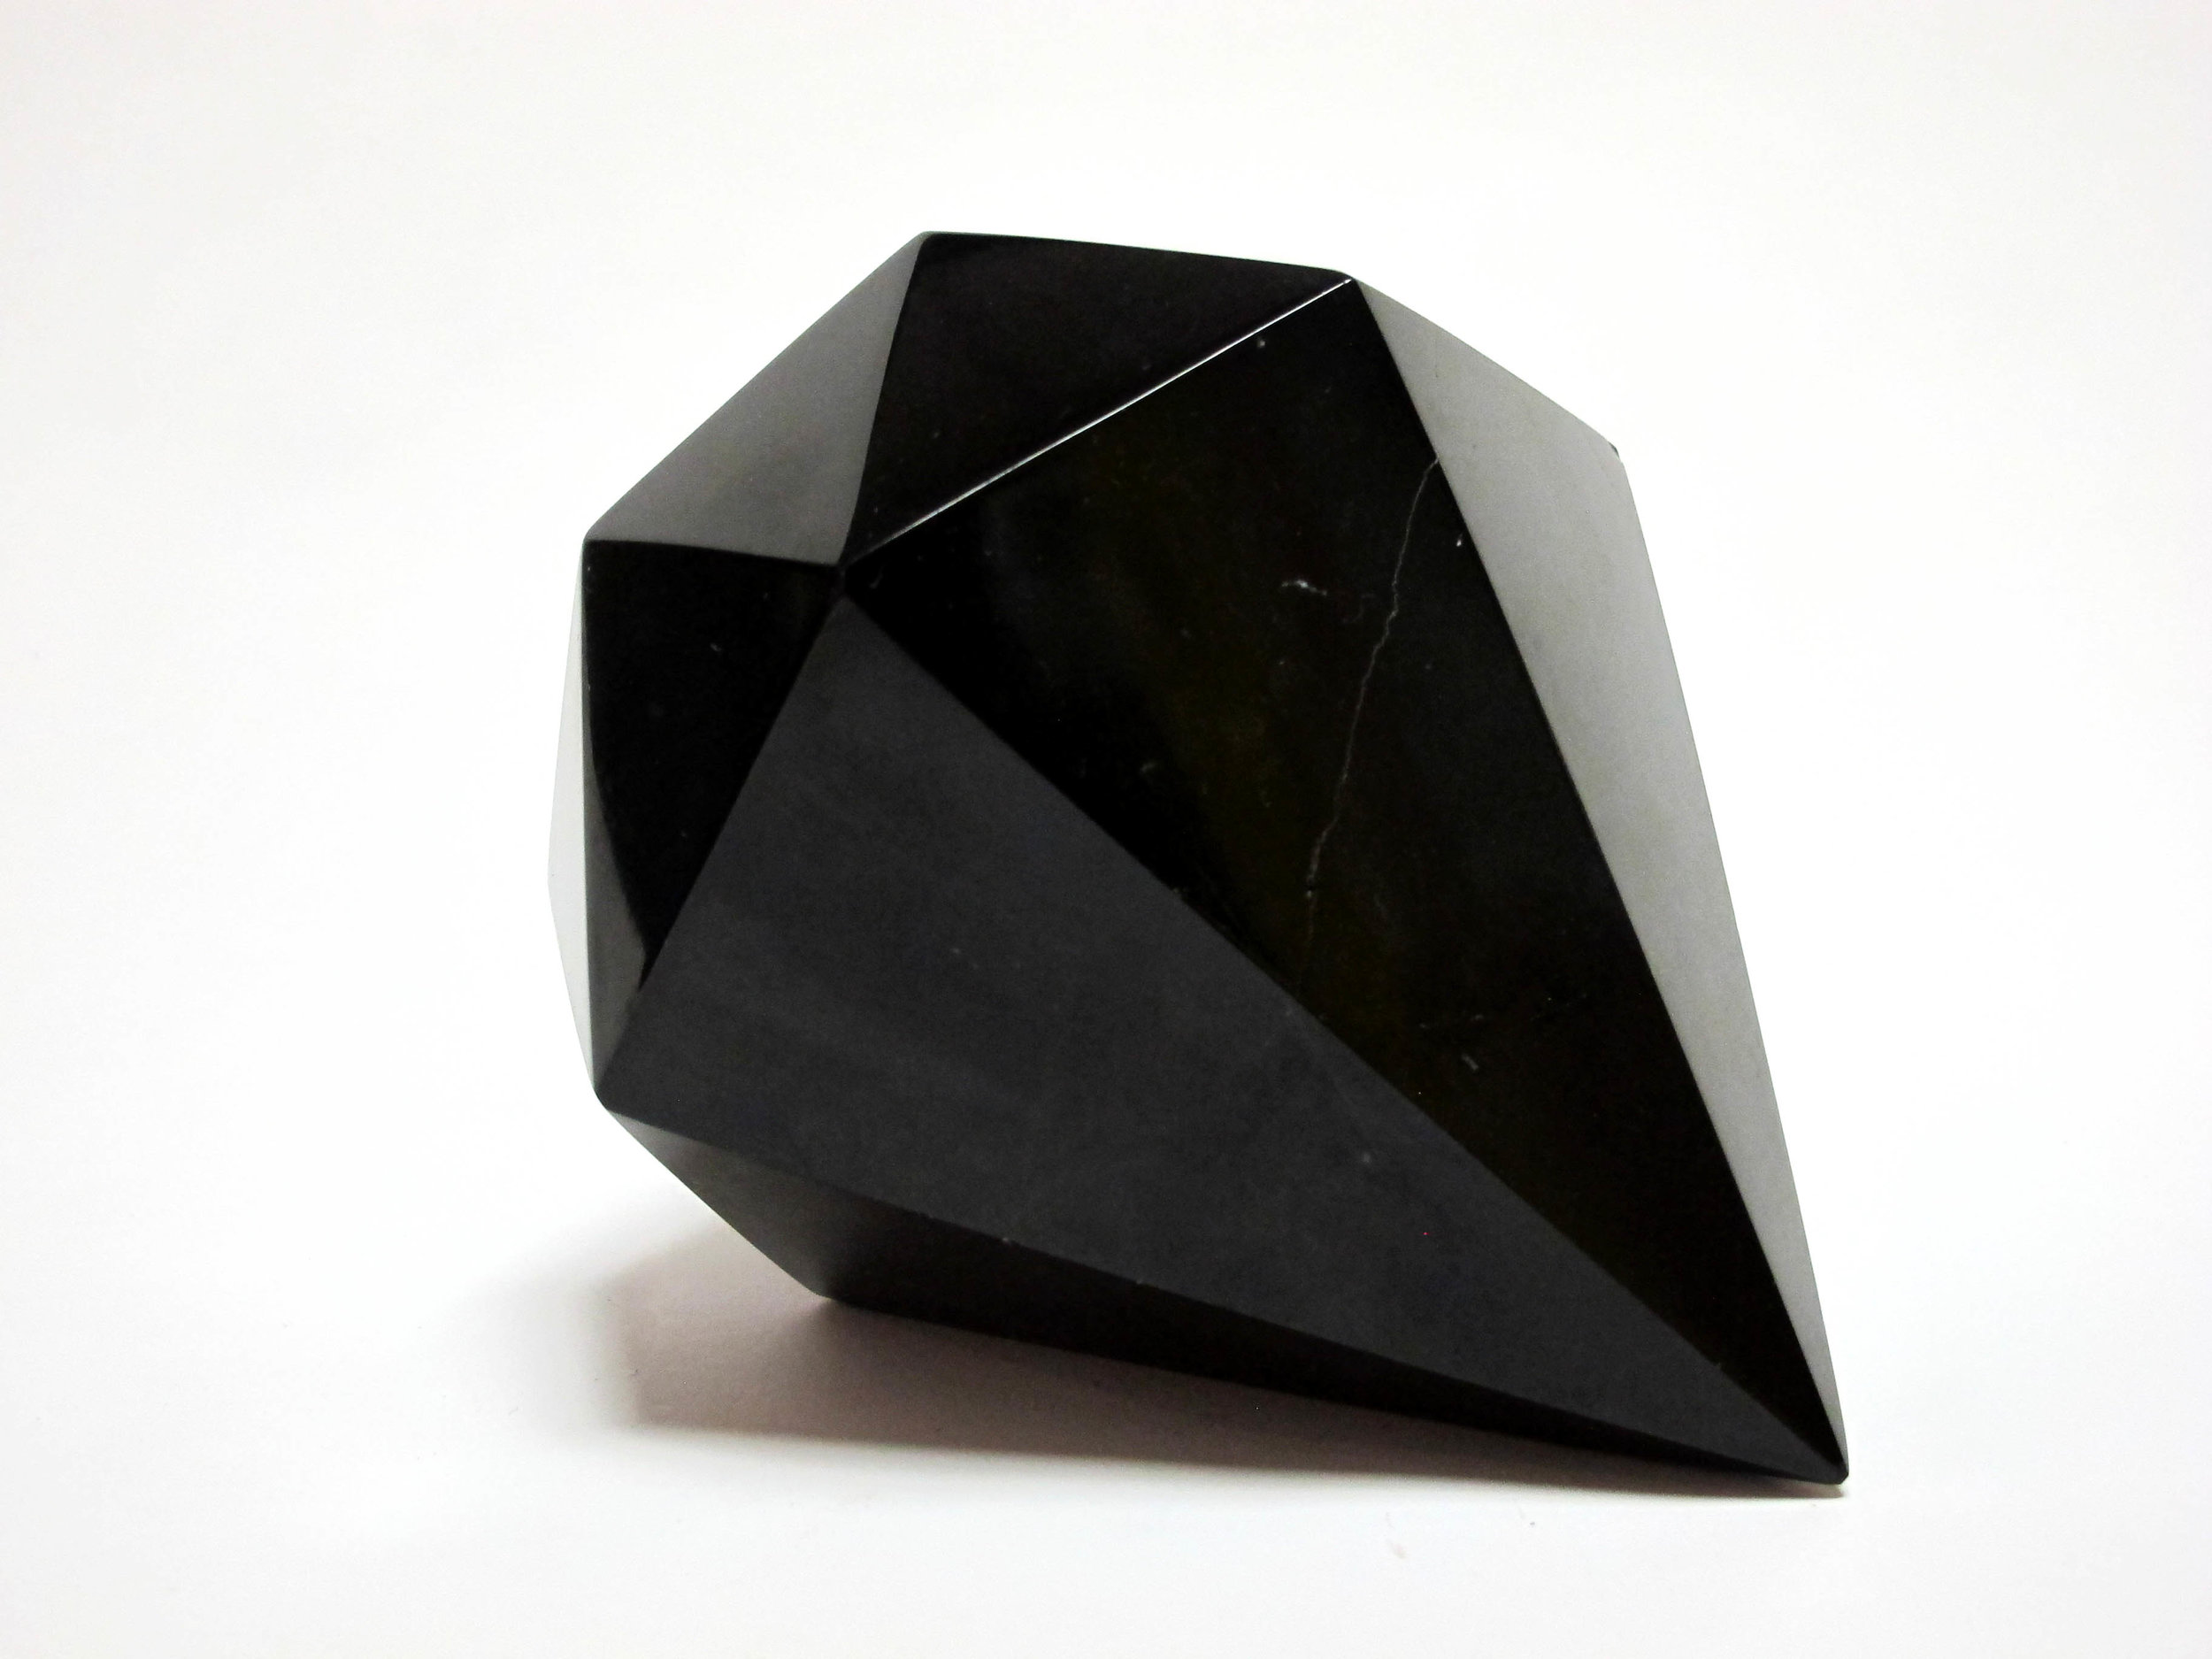 KL_Black Diamond-large 4.jpg